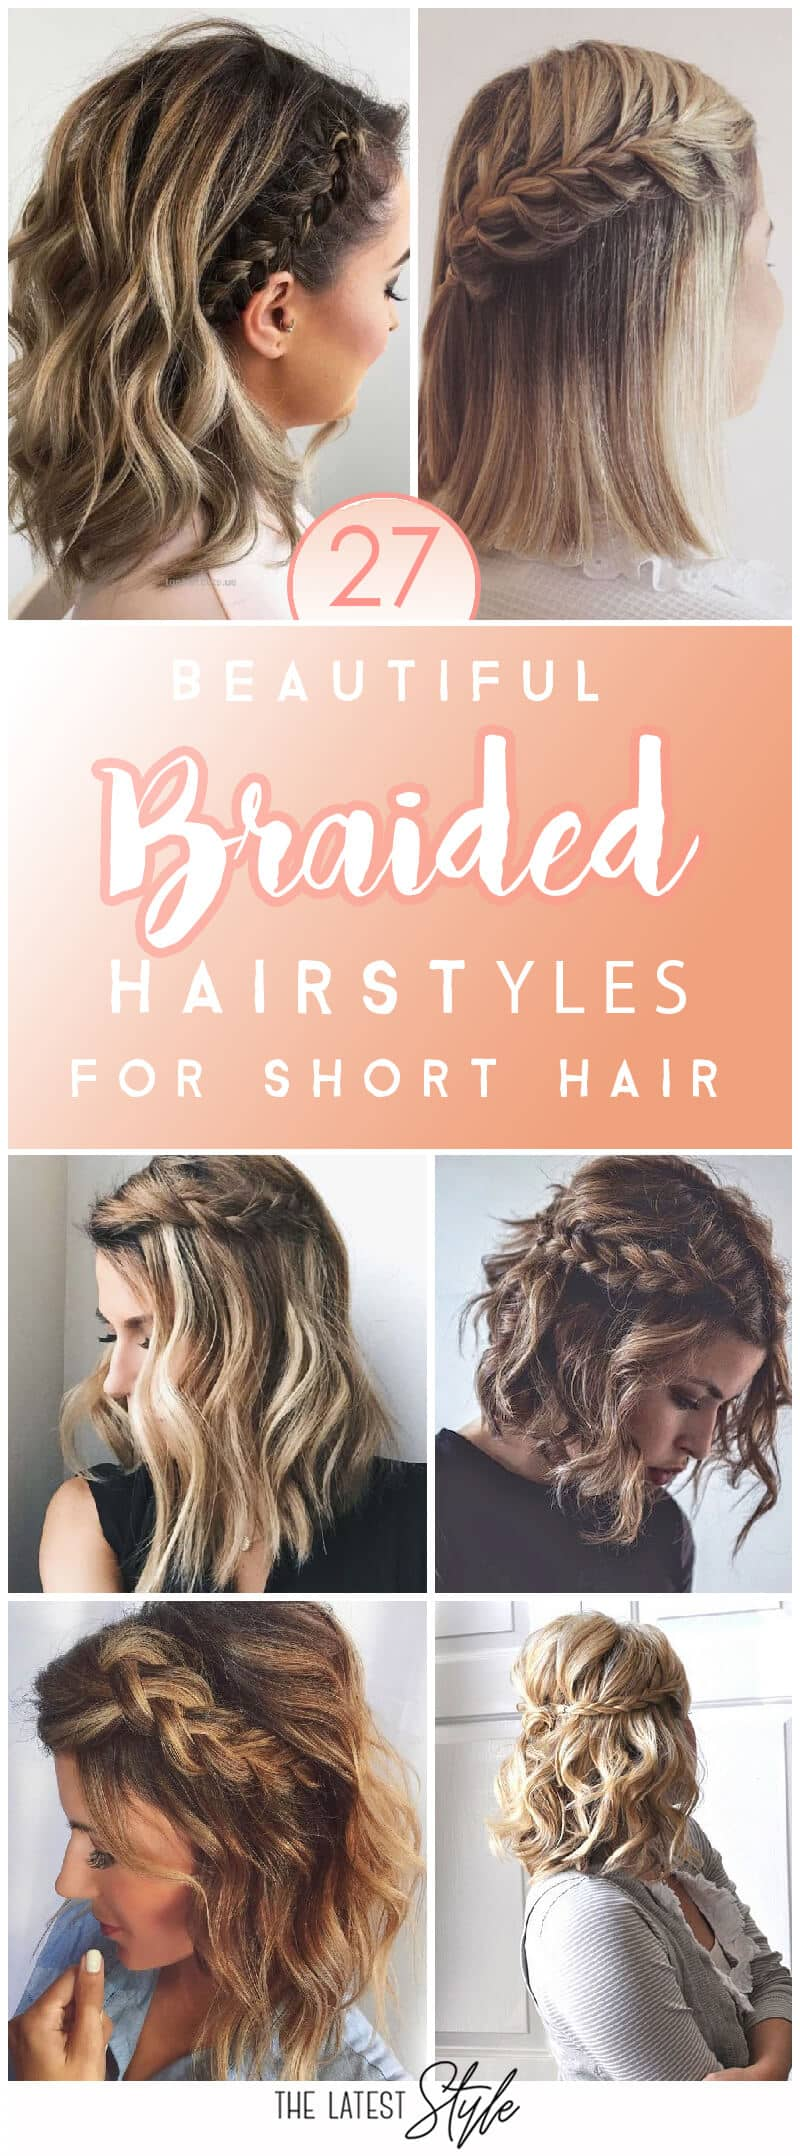 12 Beautiful and Fresh Braid Hairstyle Ideas for Short Hair